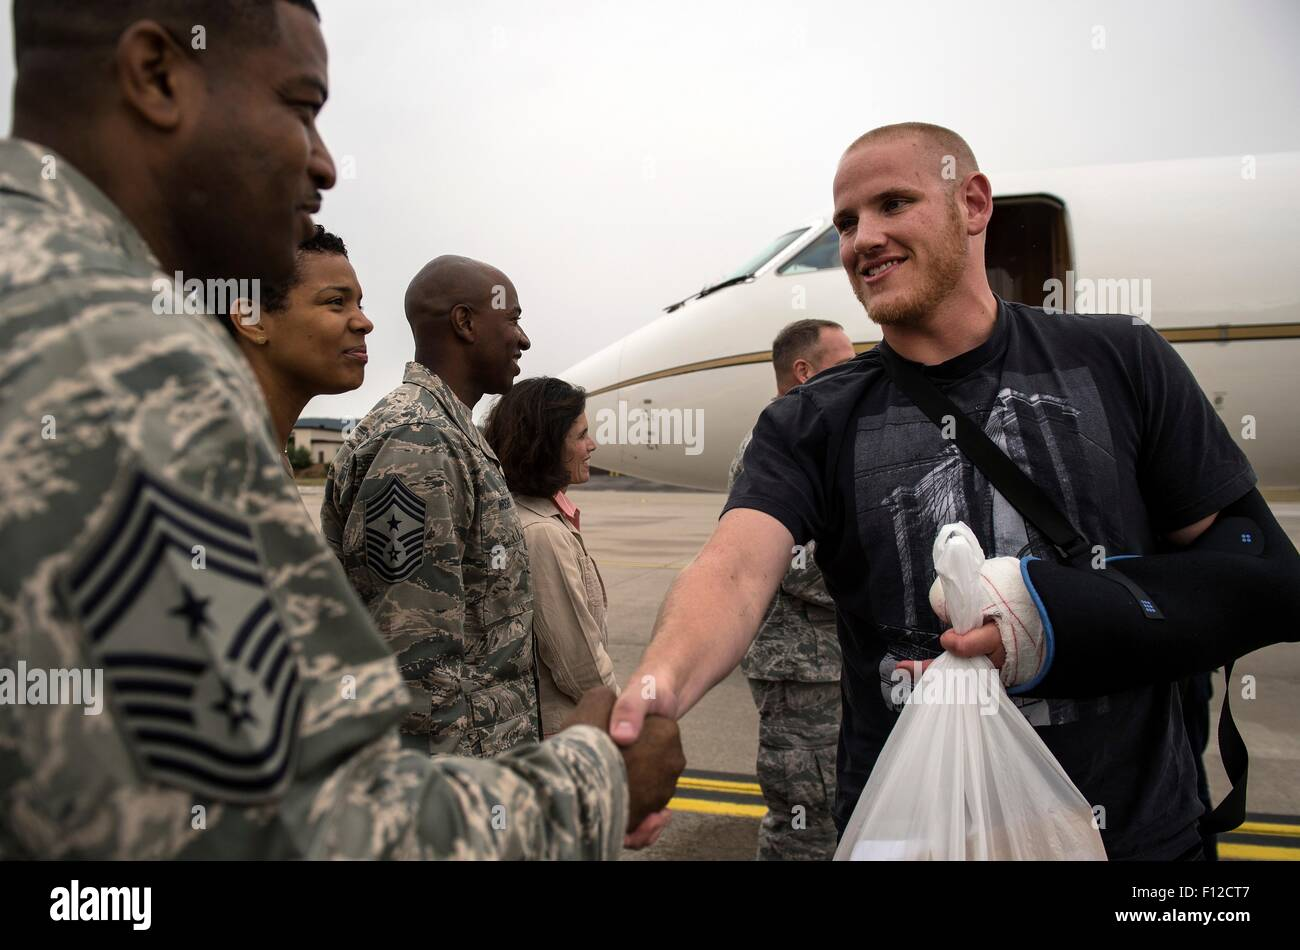 Paris, France. 24th Aug, 2015. U.S. Airman 1st Class Spencer Stone is welcomed by Chief Master Sgt. Phillip Easton, - Stock Image